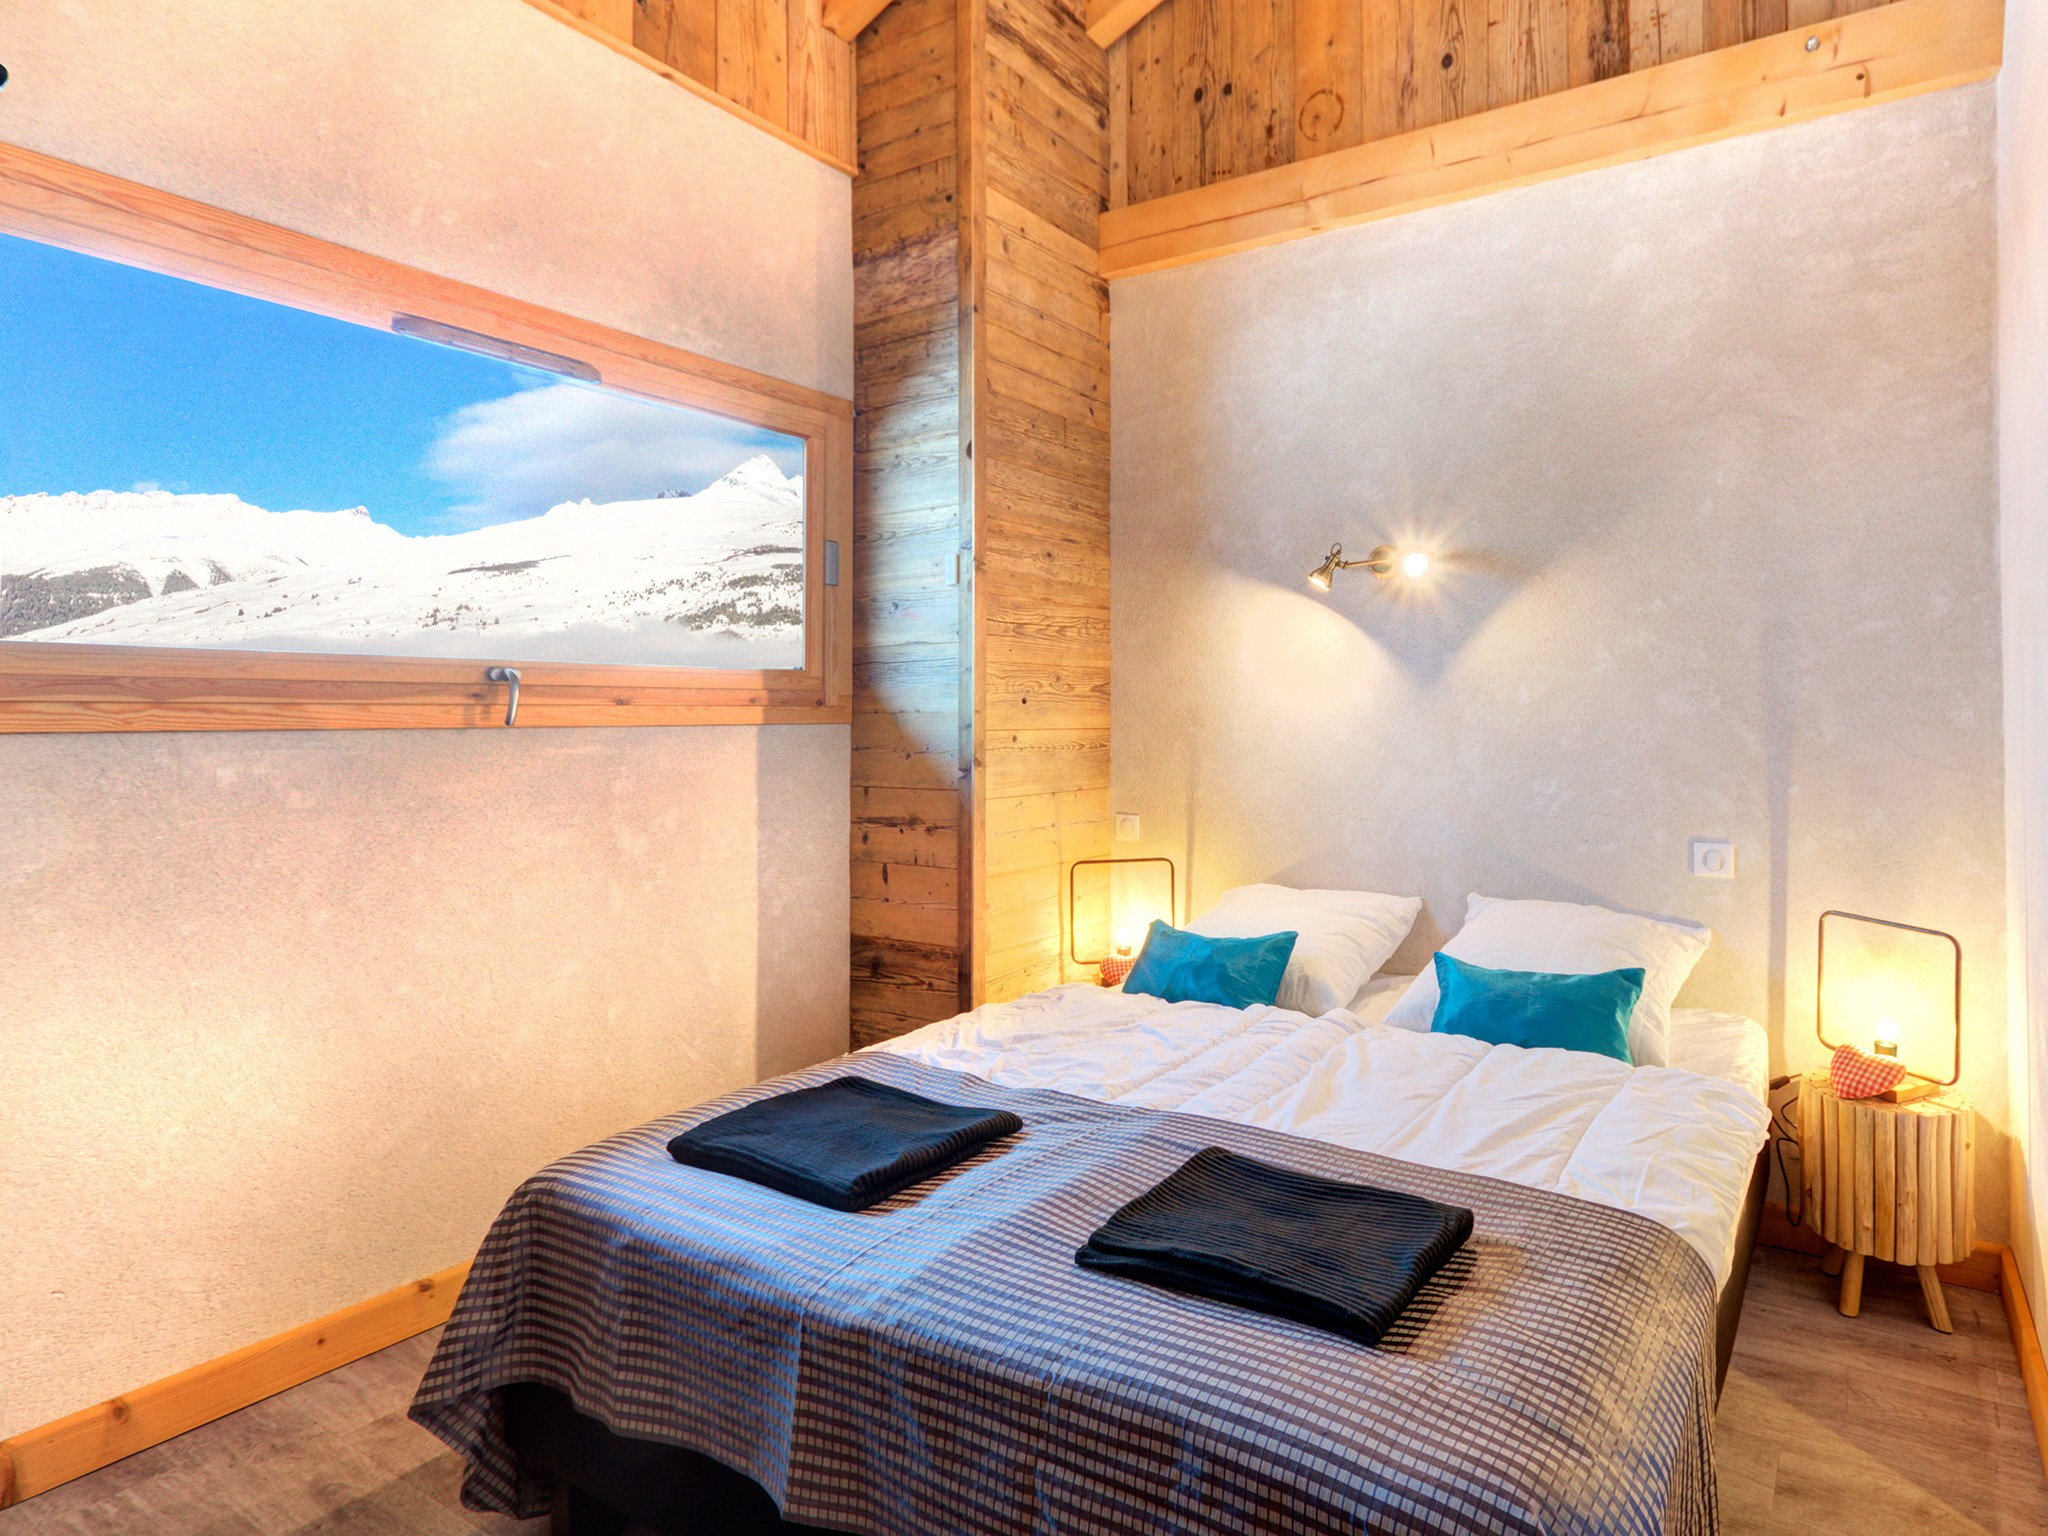 Chalet Ski Dream - bedroom